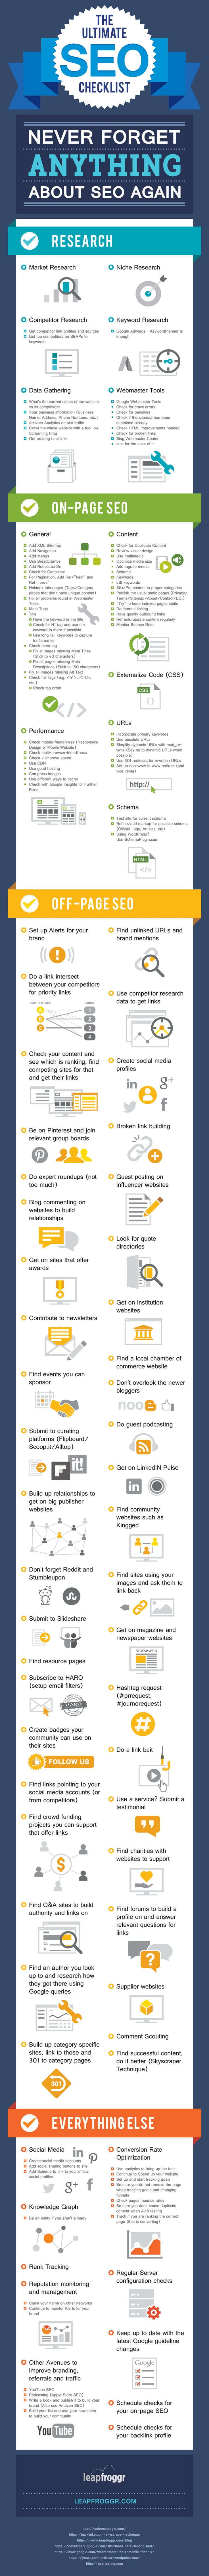 #SEO Checklist: Never Forget Anything About SEO Ever Again - #infographic